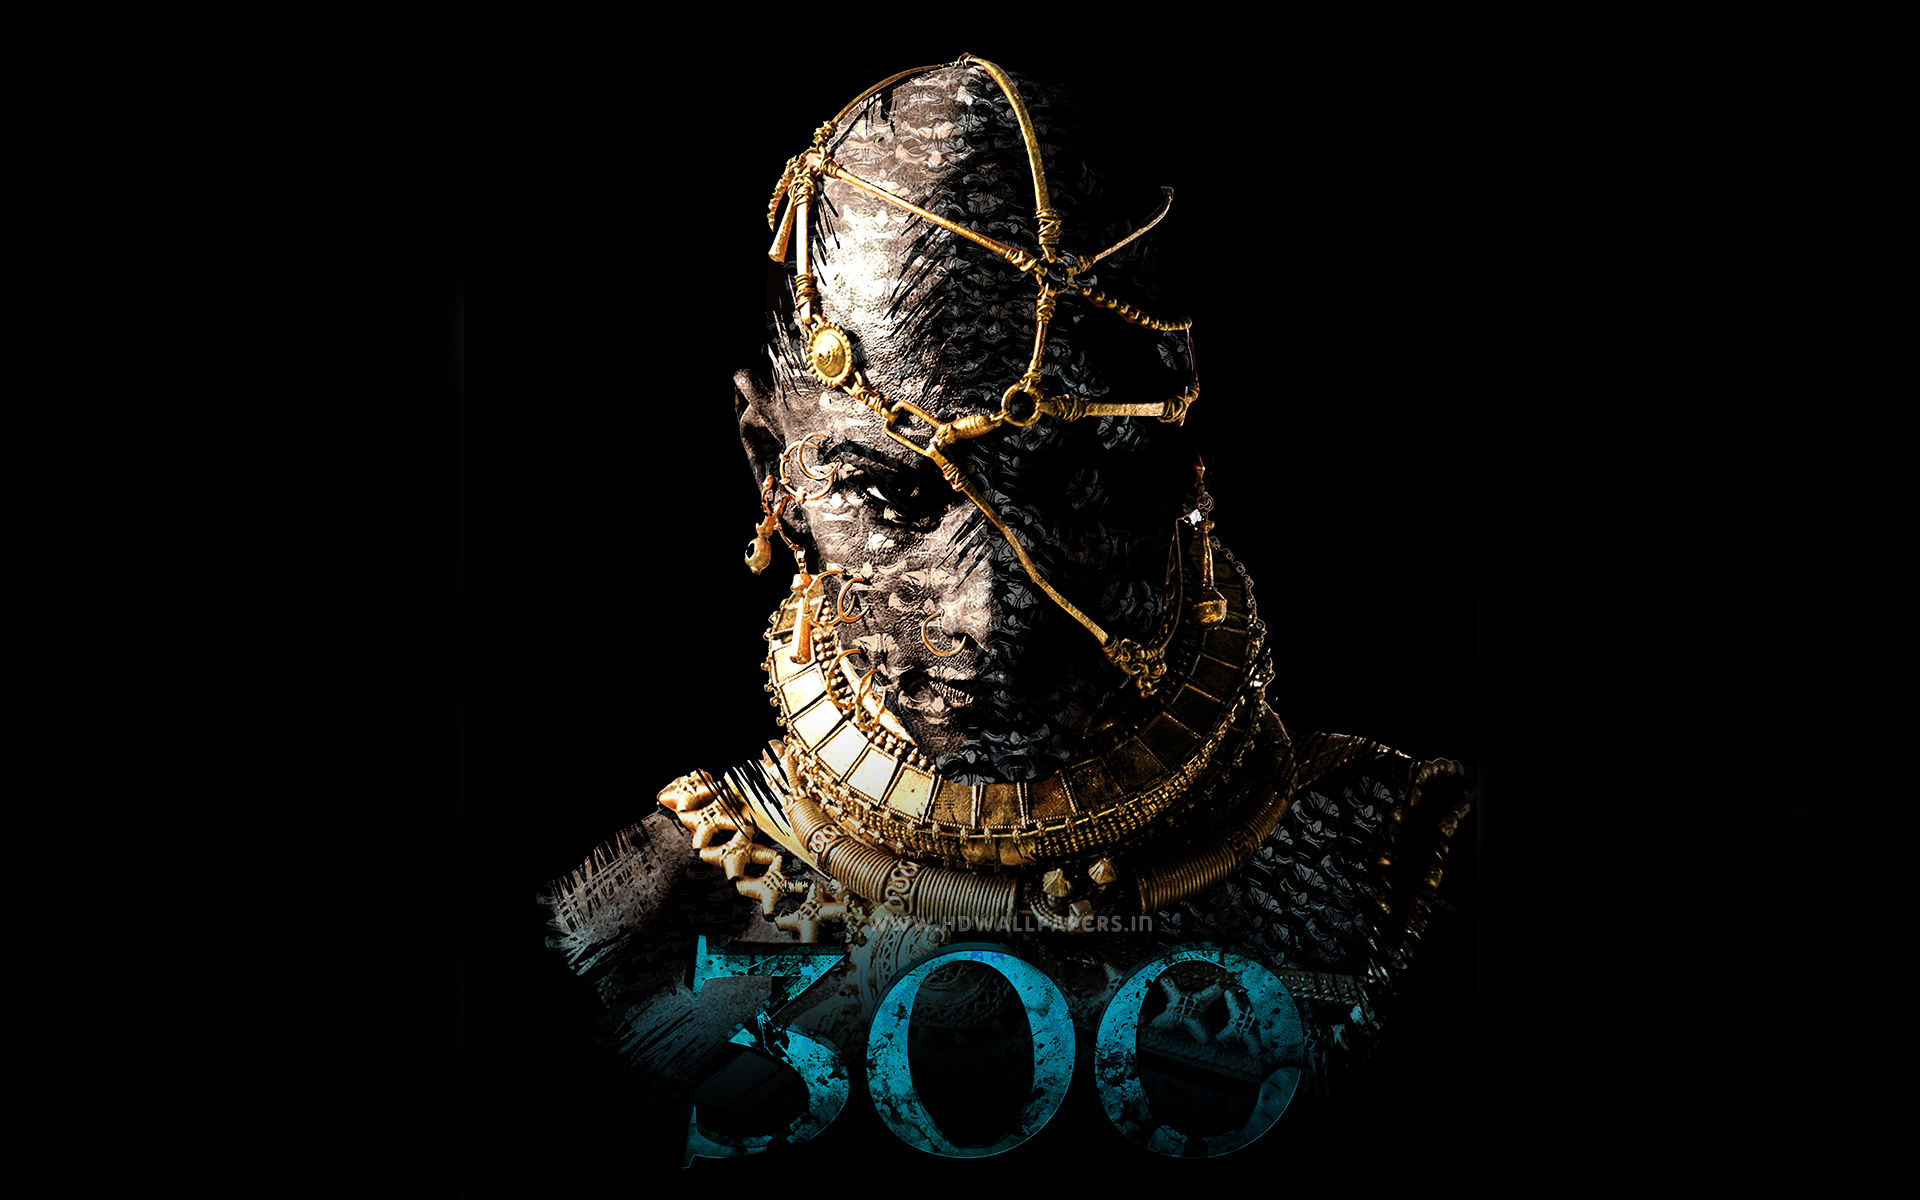 300 rise of an empire movie - wallpaper, high definition, high